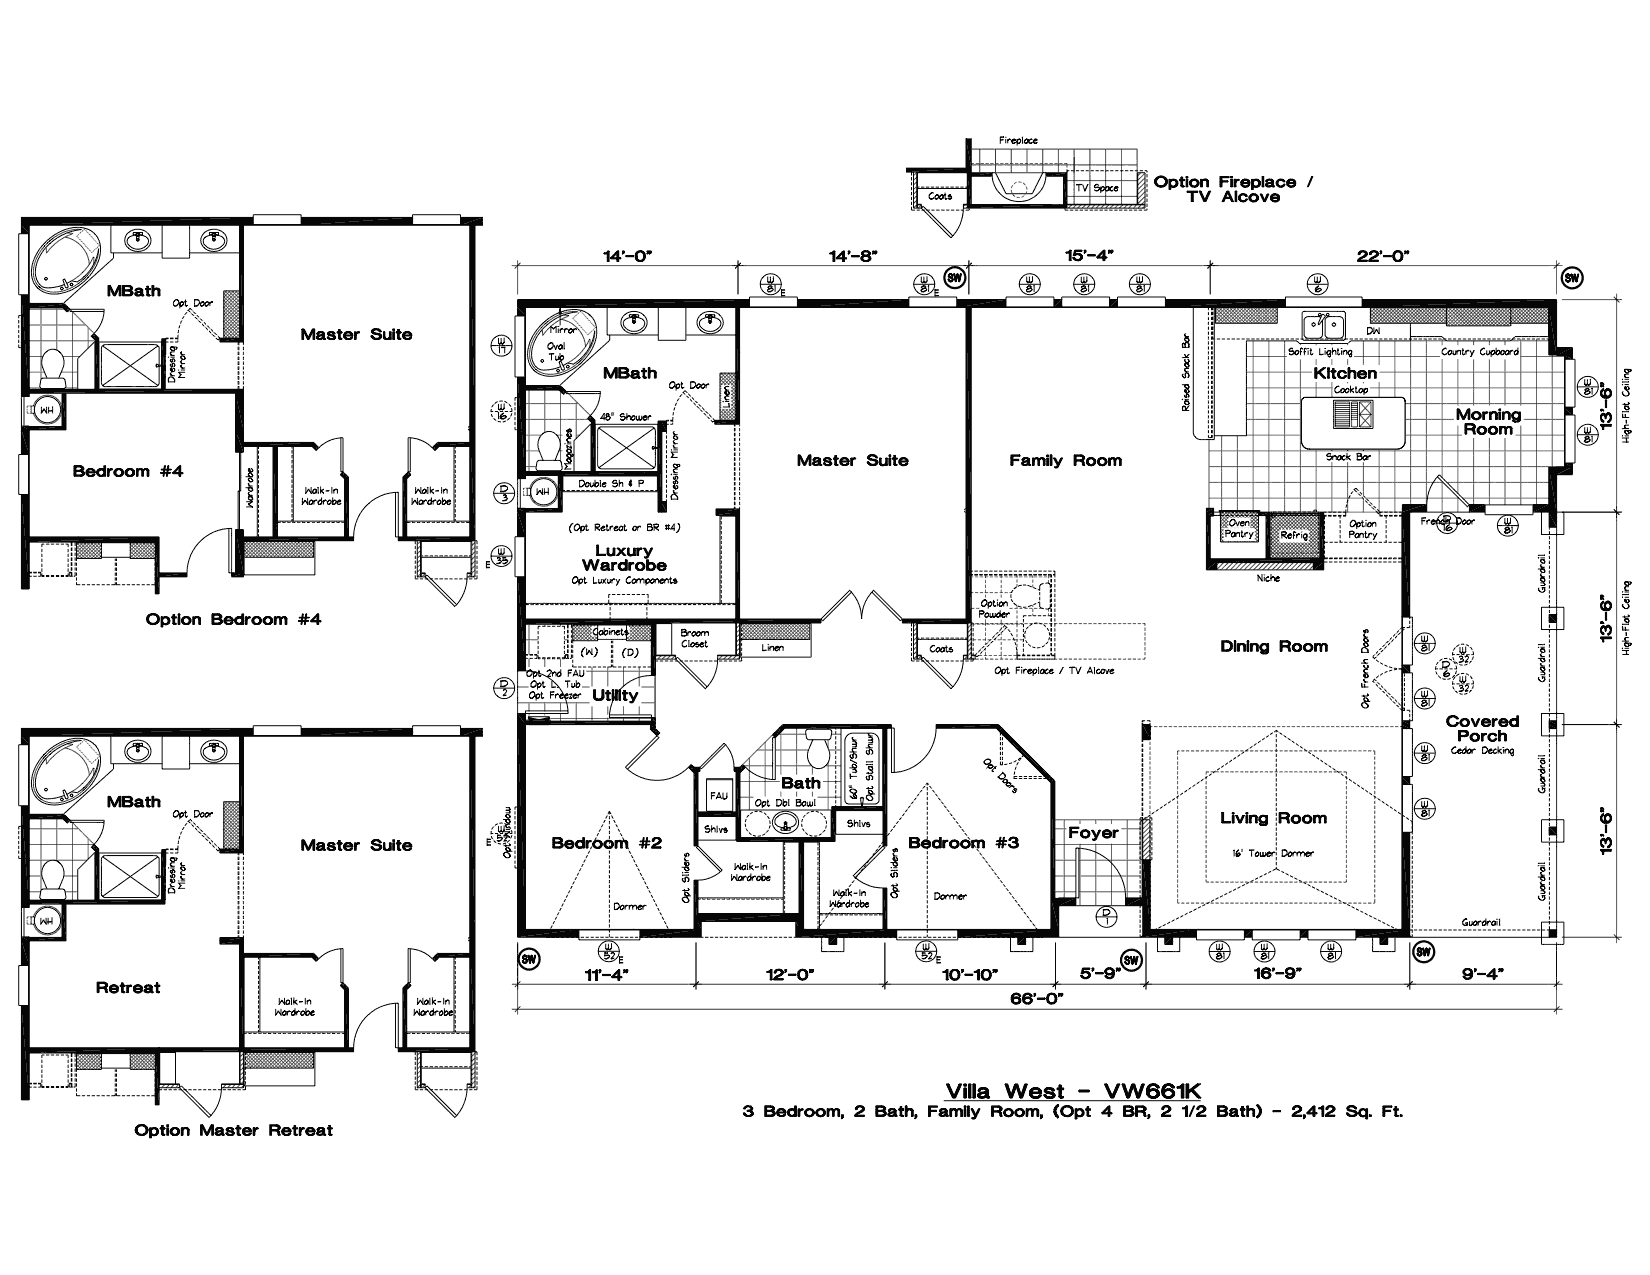 large house plans  free semi custom house plans custom modern. House Plans With Large Kitchens Decorating Gallery   A1houston com